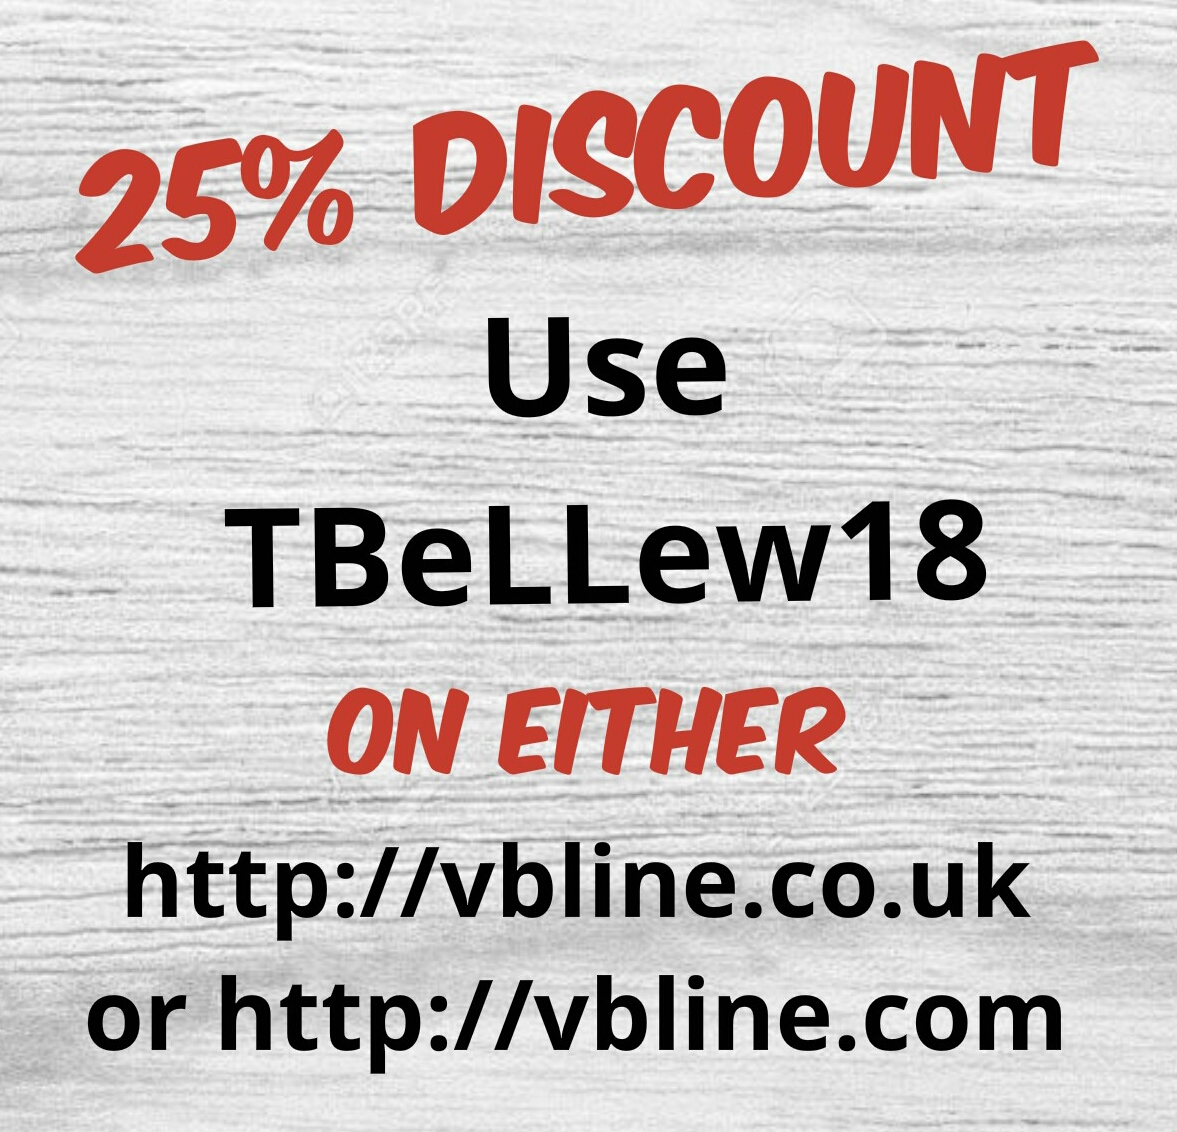 VB Line 25% discount